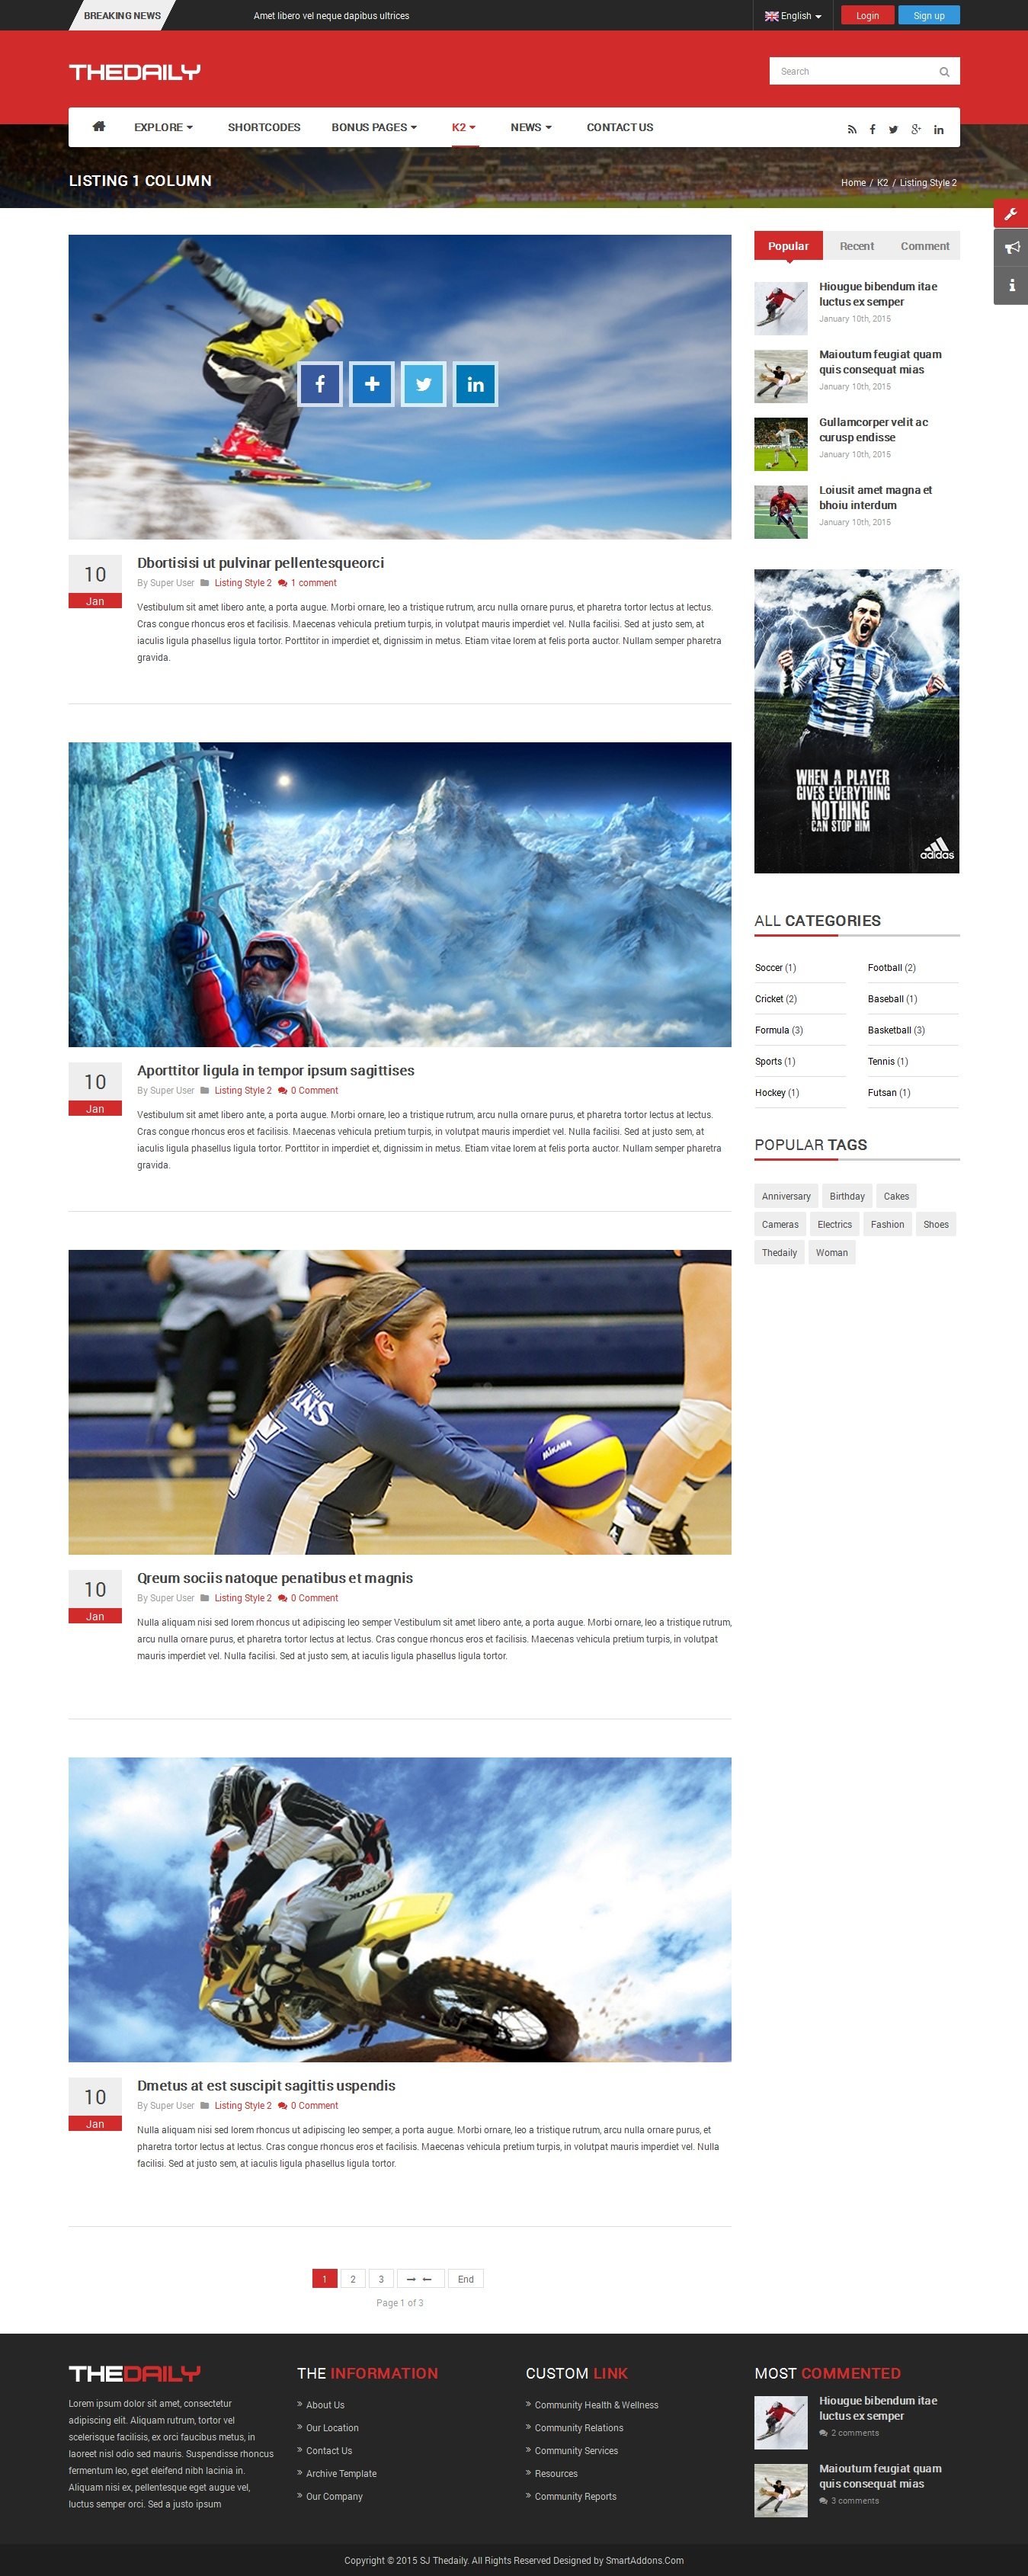 SJ TheDaily - Responsive Joomla  News Magazine Portal Template - 04_listing-style2-compressed.jpg